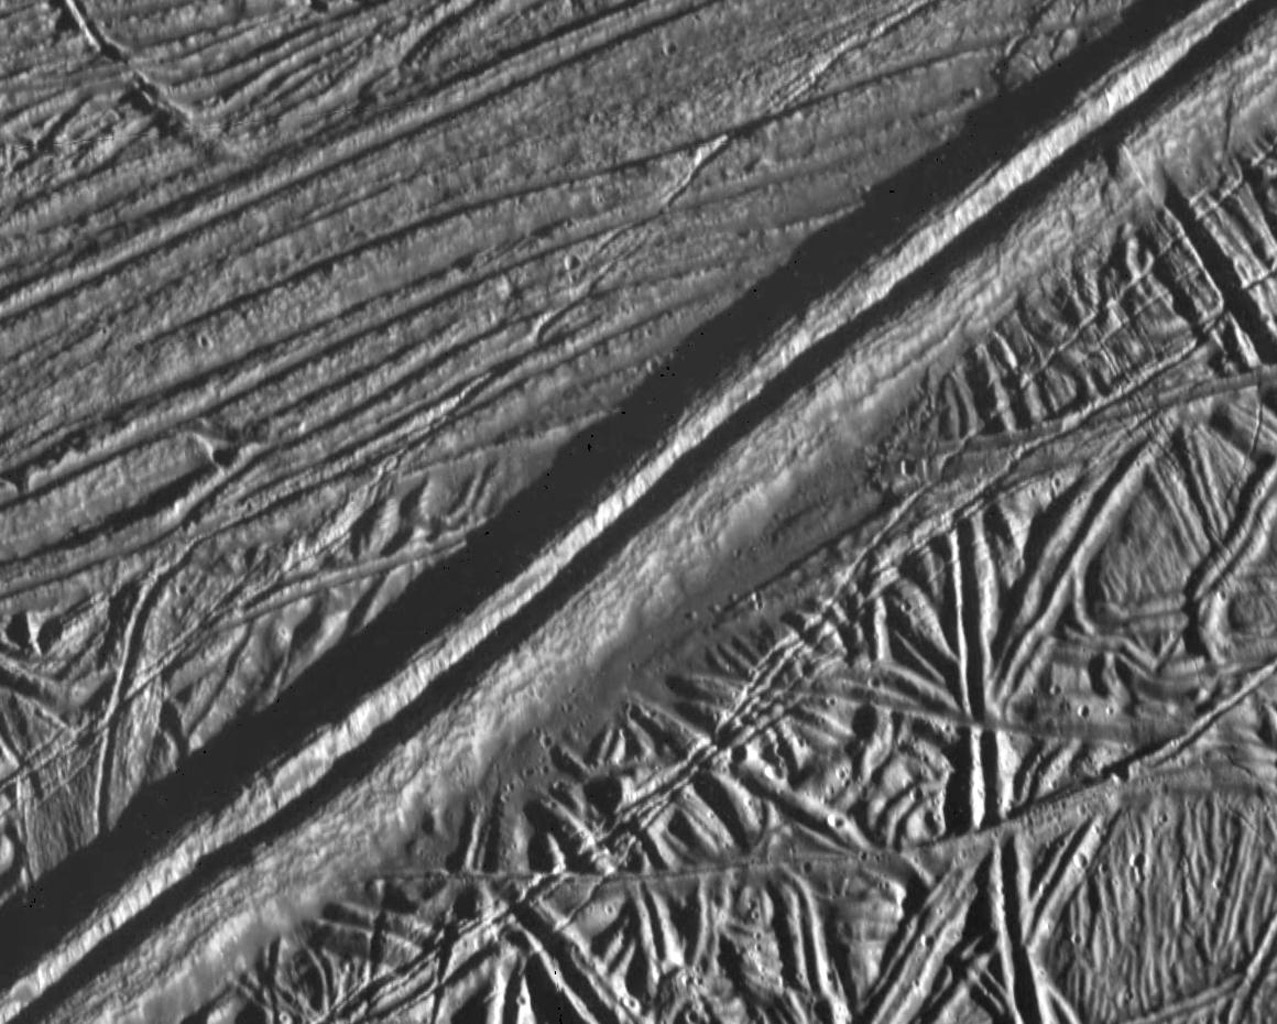 This view of the icy surface of Jupiter's moon, Europa, is a mosaic of two pictures taken by the Solid State Imaging system on board NASA's Galileo spacecraft during a close flyby of Europa on February 20, 1997.